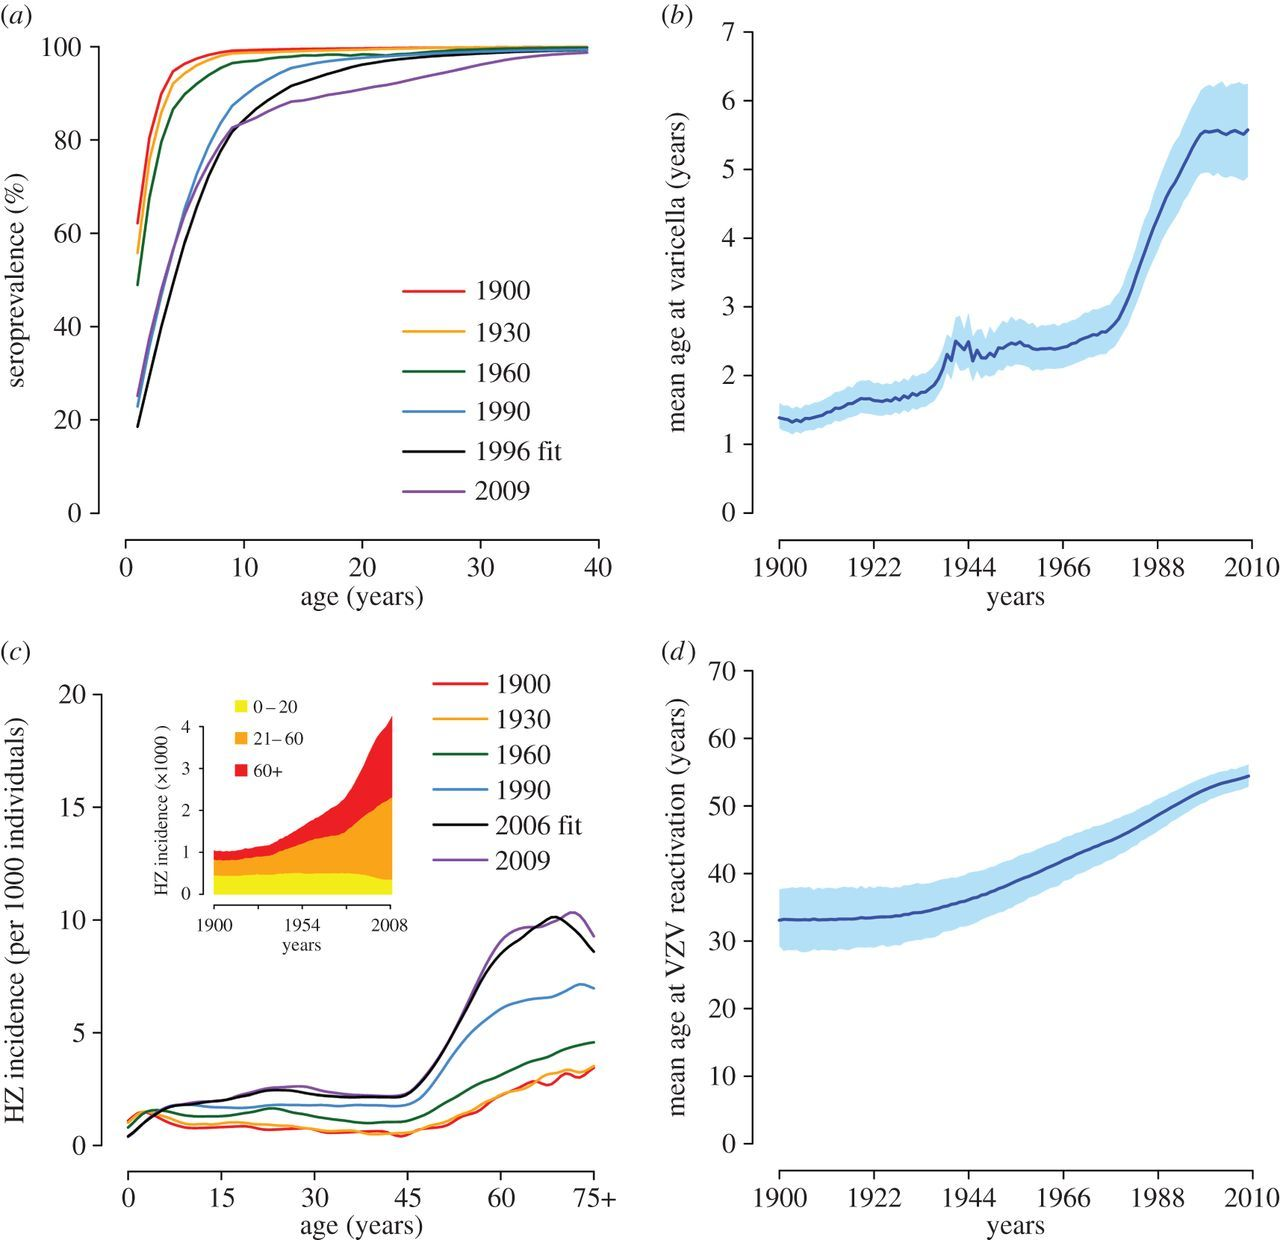 The impact of demographic changes on the epidemiology of herpes